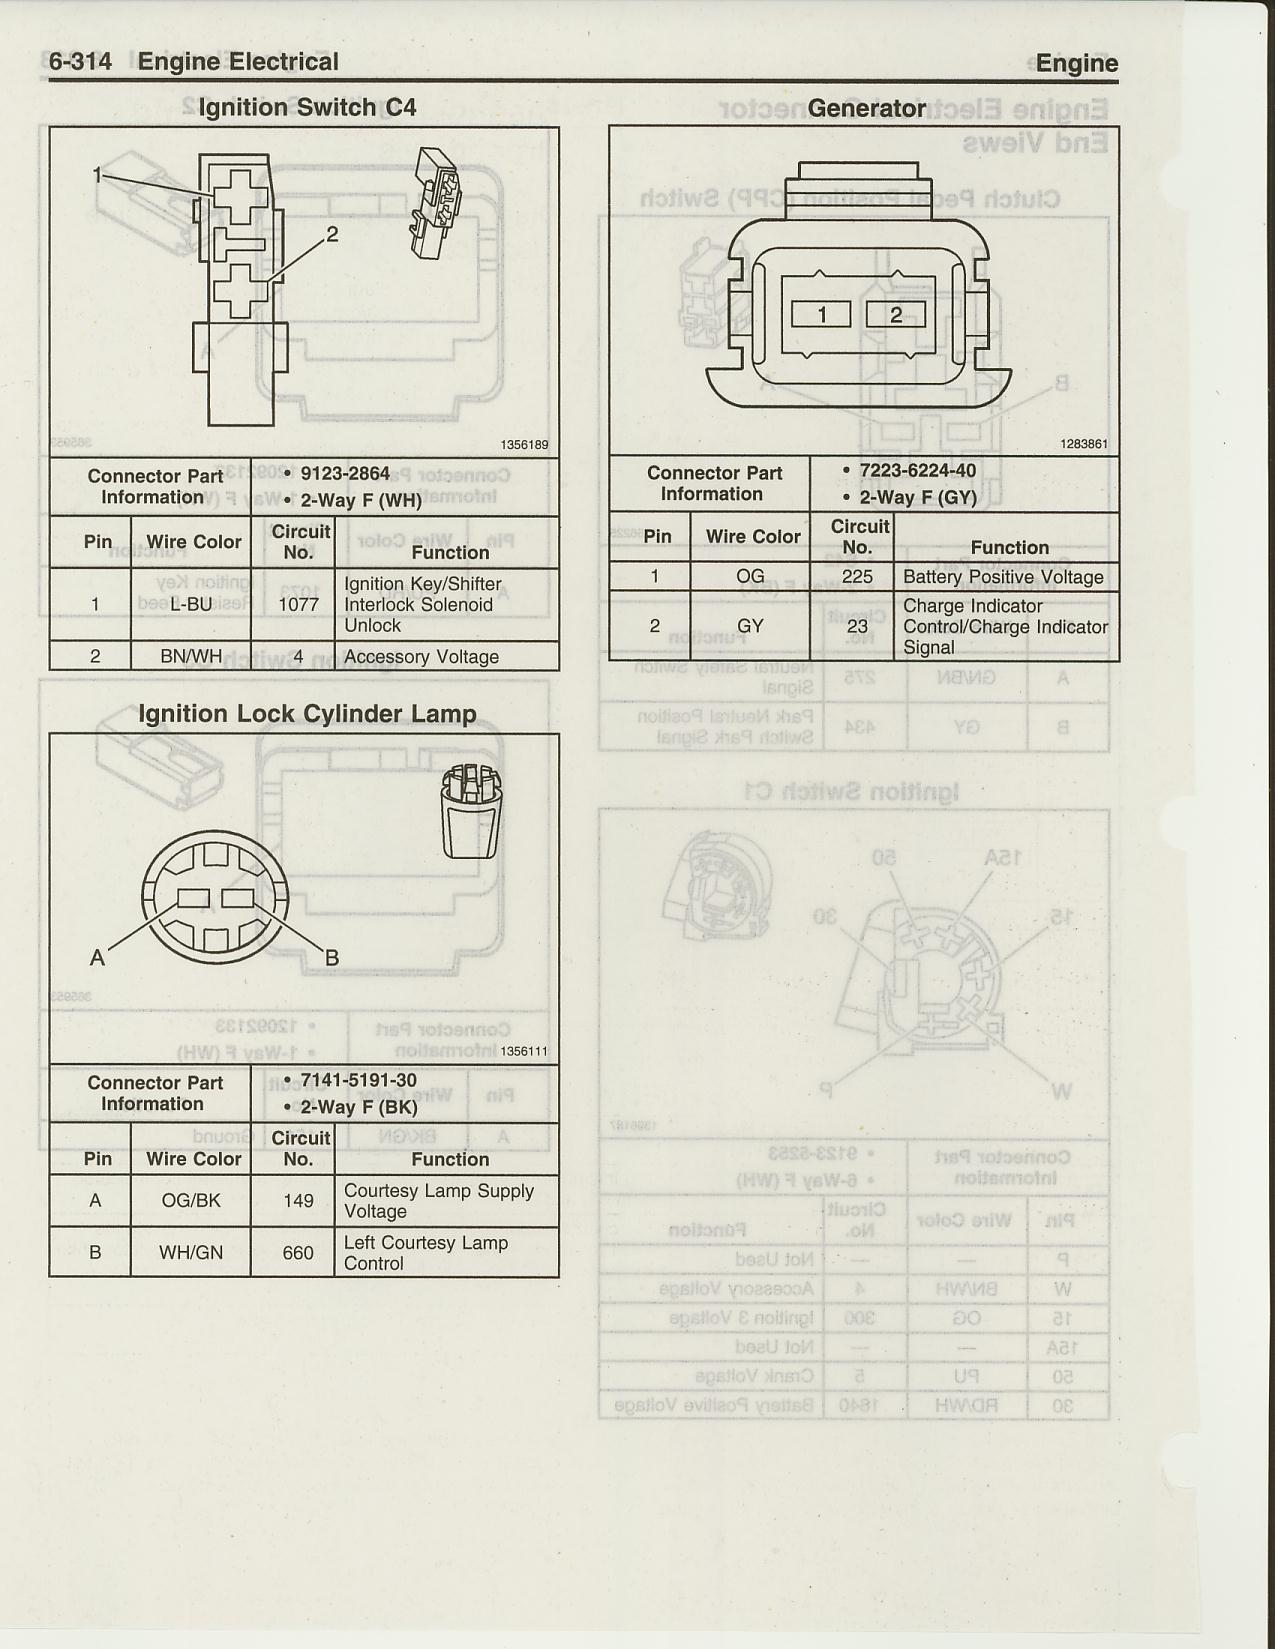 Technical Data For Ls2 Helms Information 2 Way Generator Switch Engine Electrical Connector Views Ignit Sw C4 Lock Cylinder Lamp